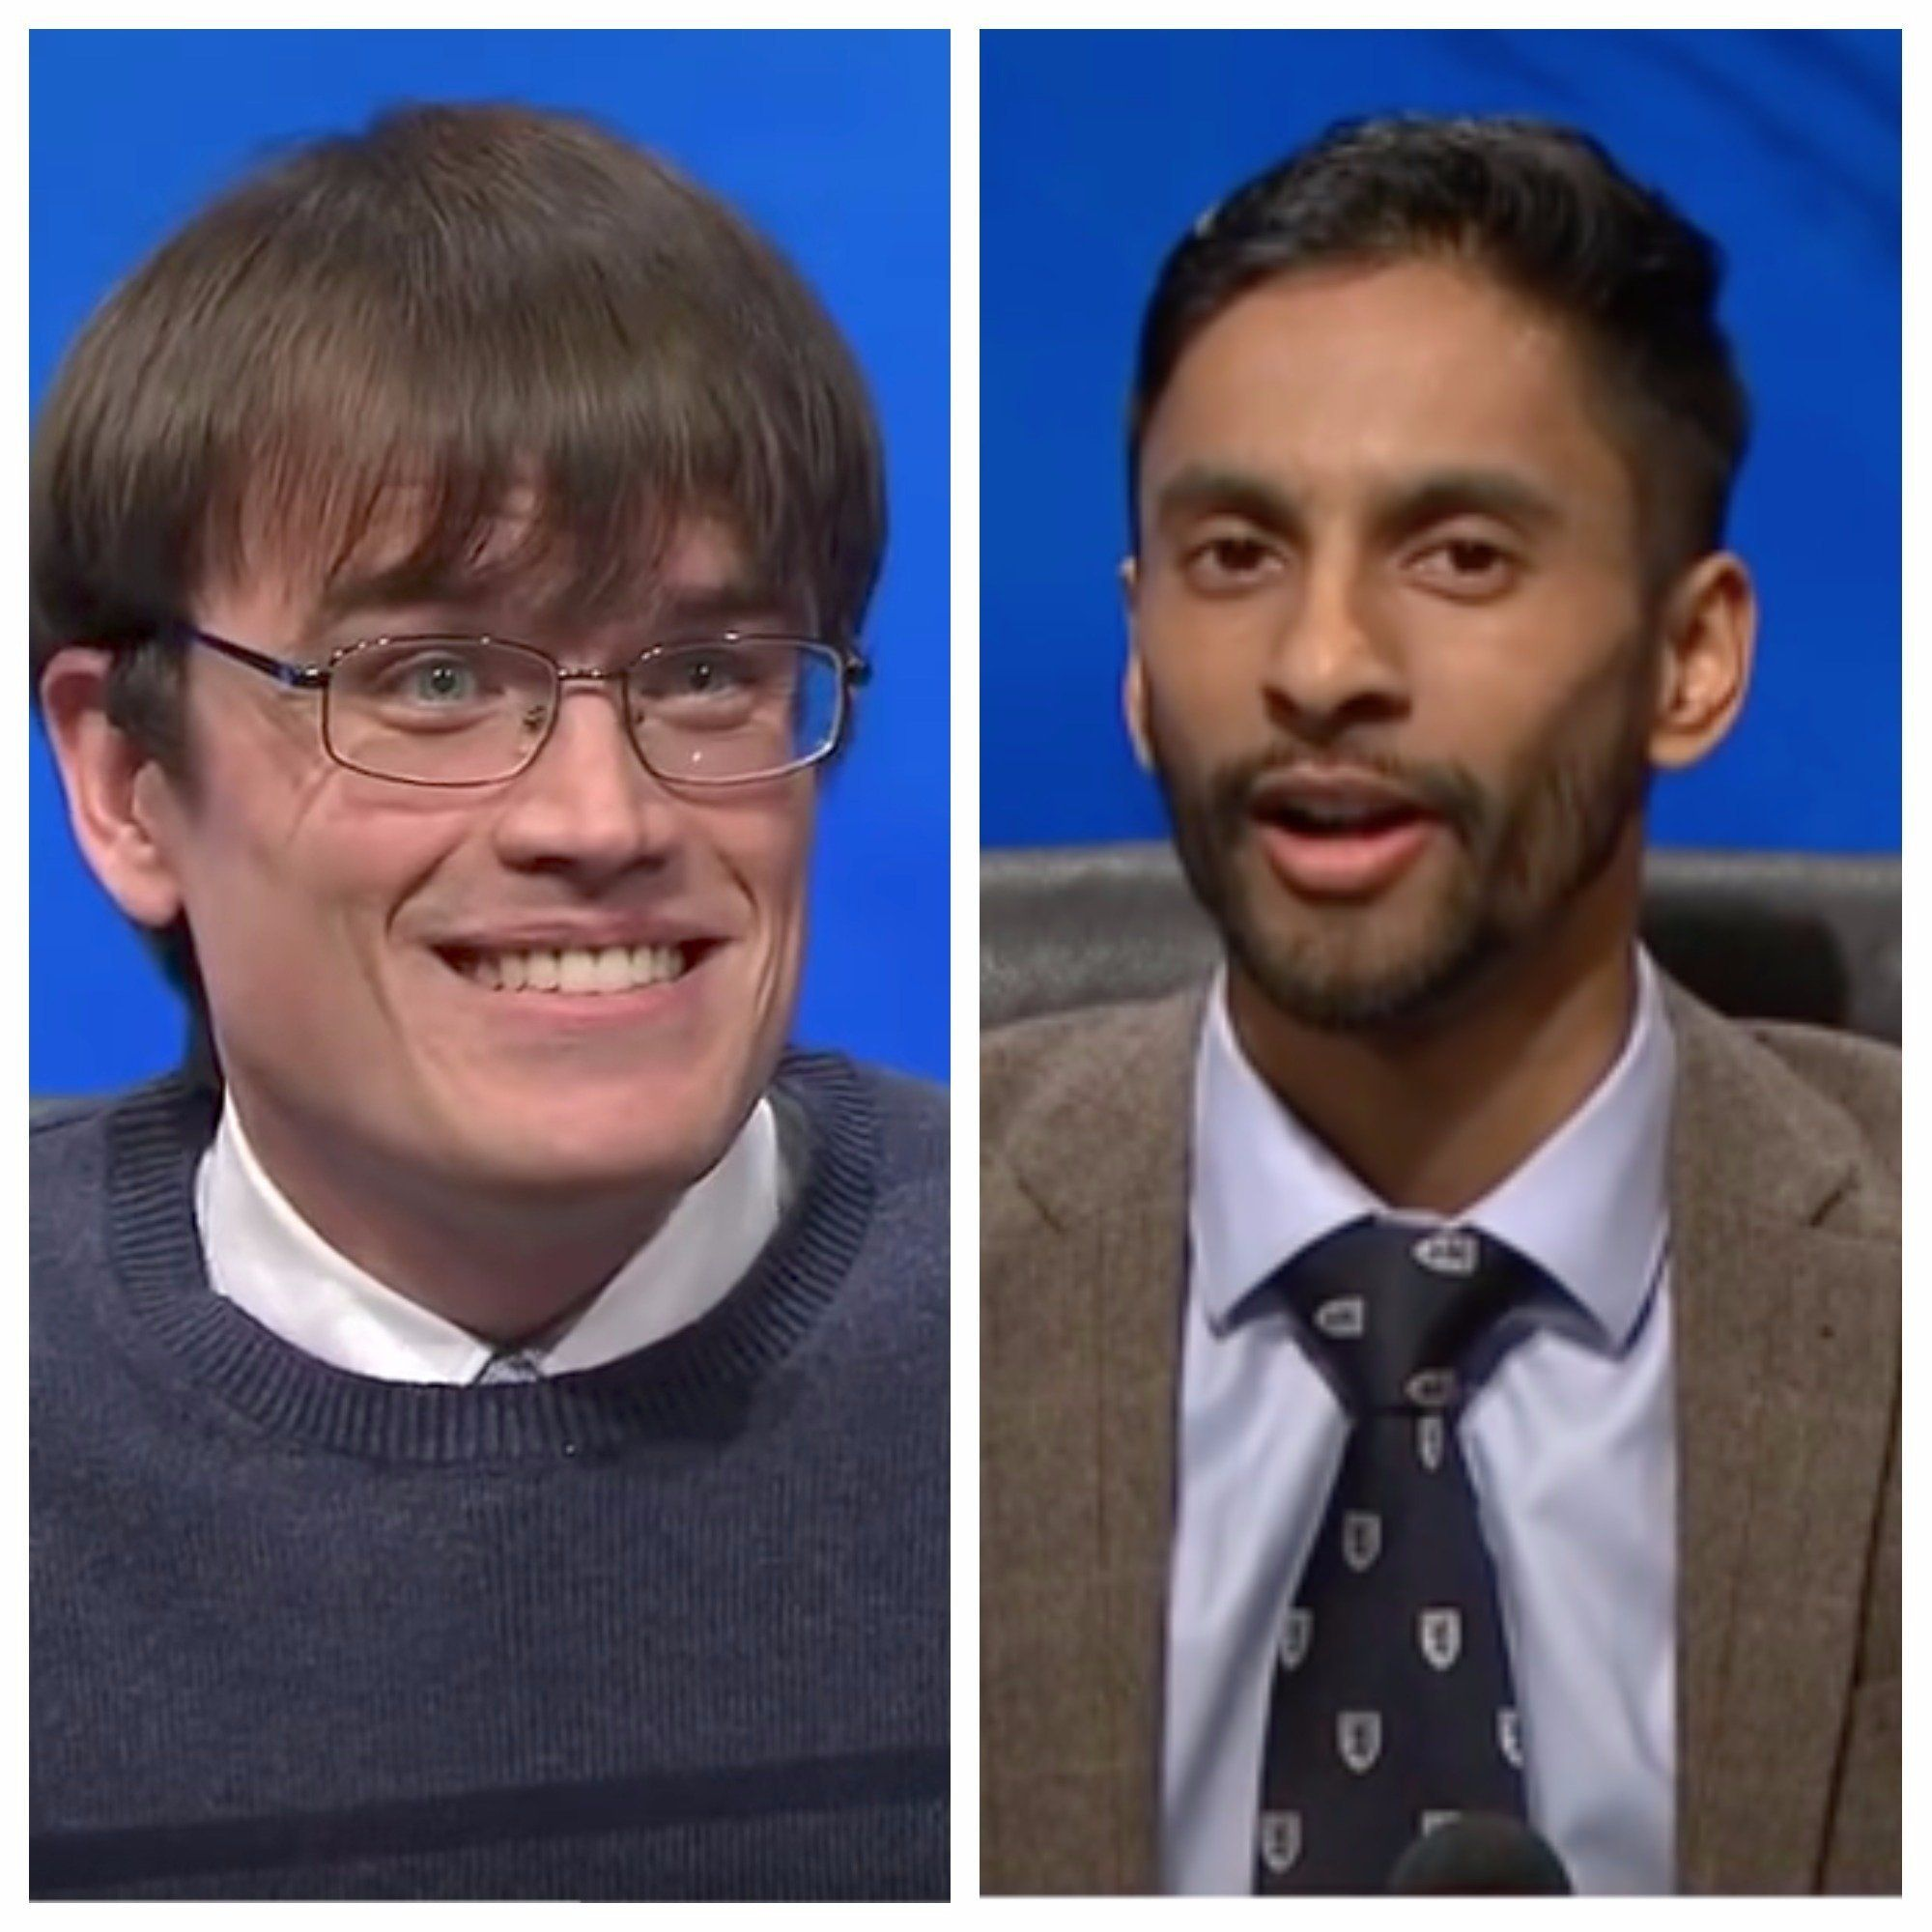 Eric Monkman And Bobby Seagull Got Their Own Show And People Are Freaking Out